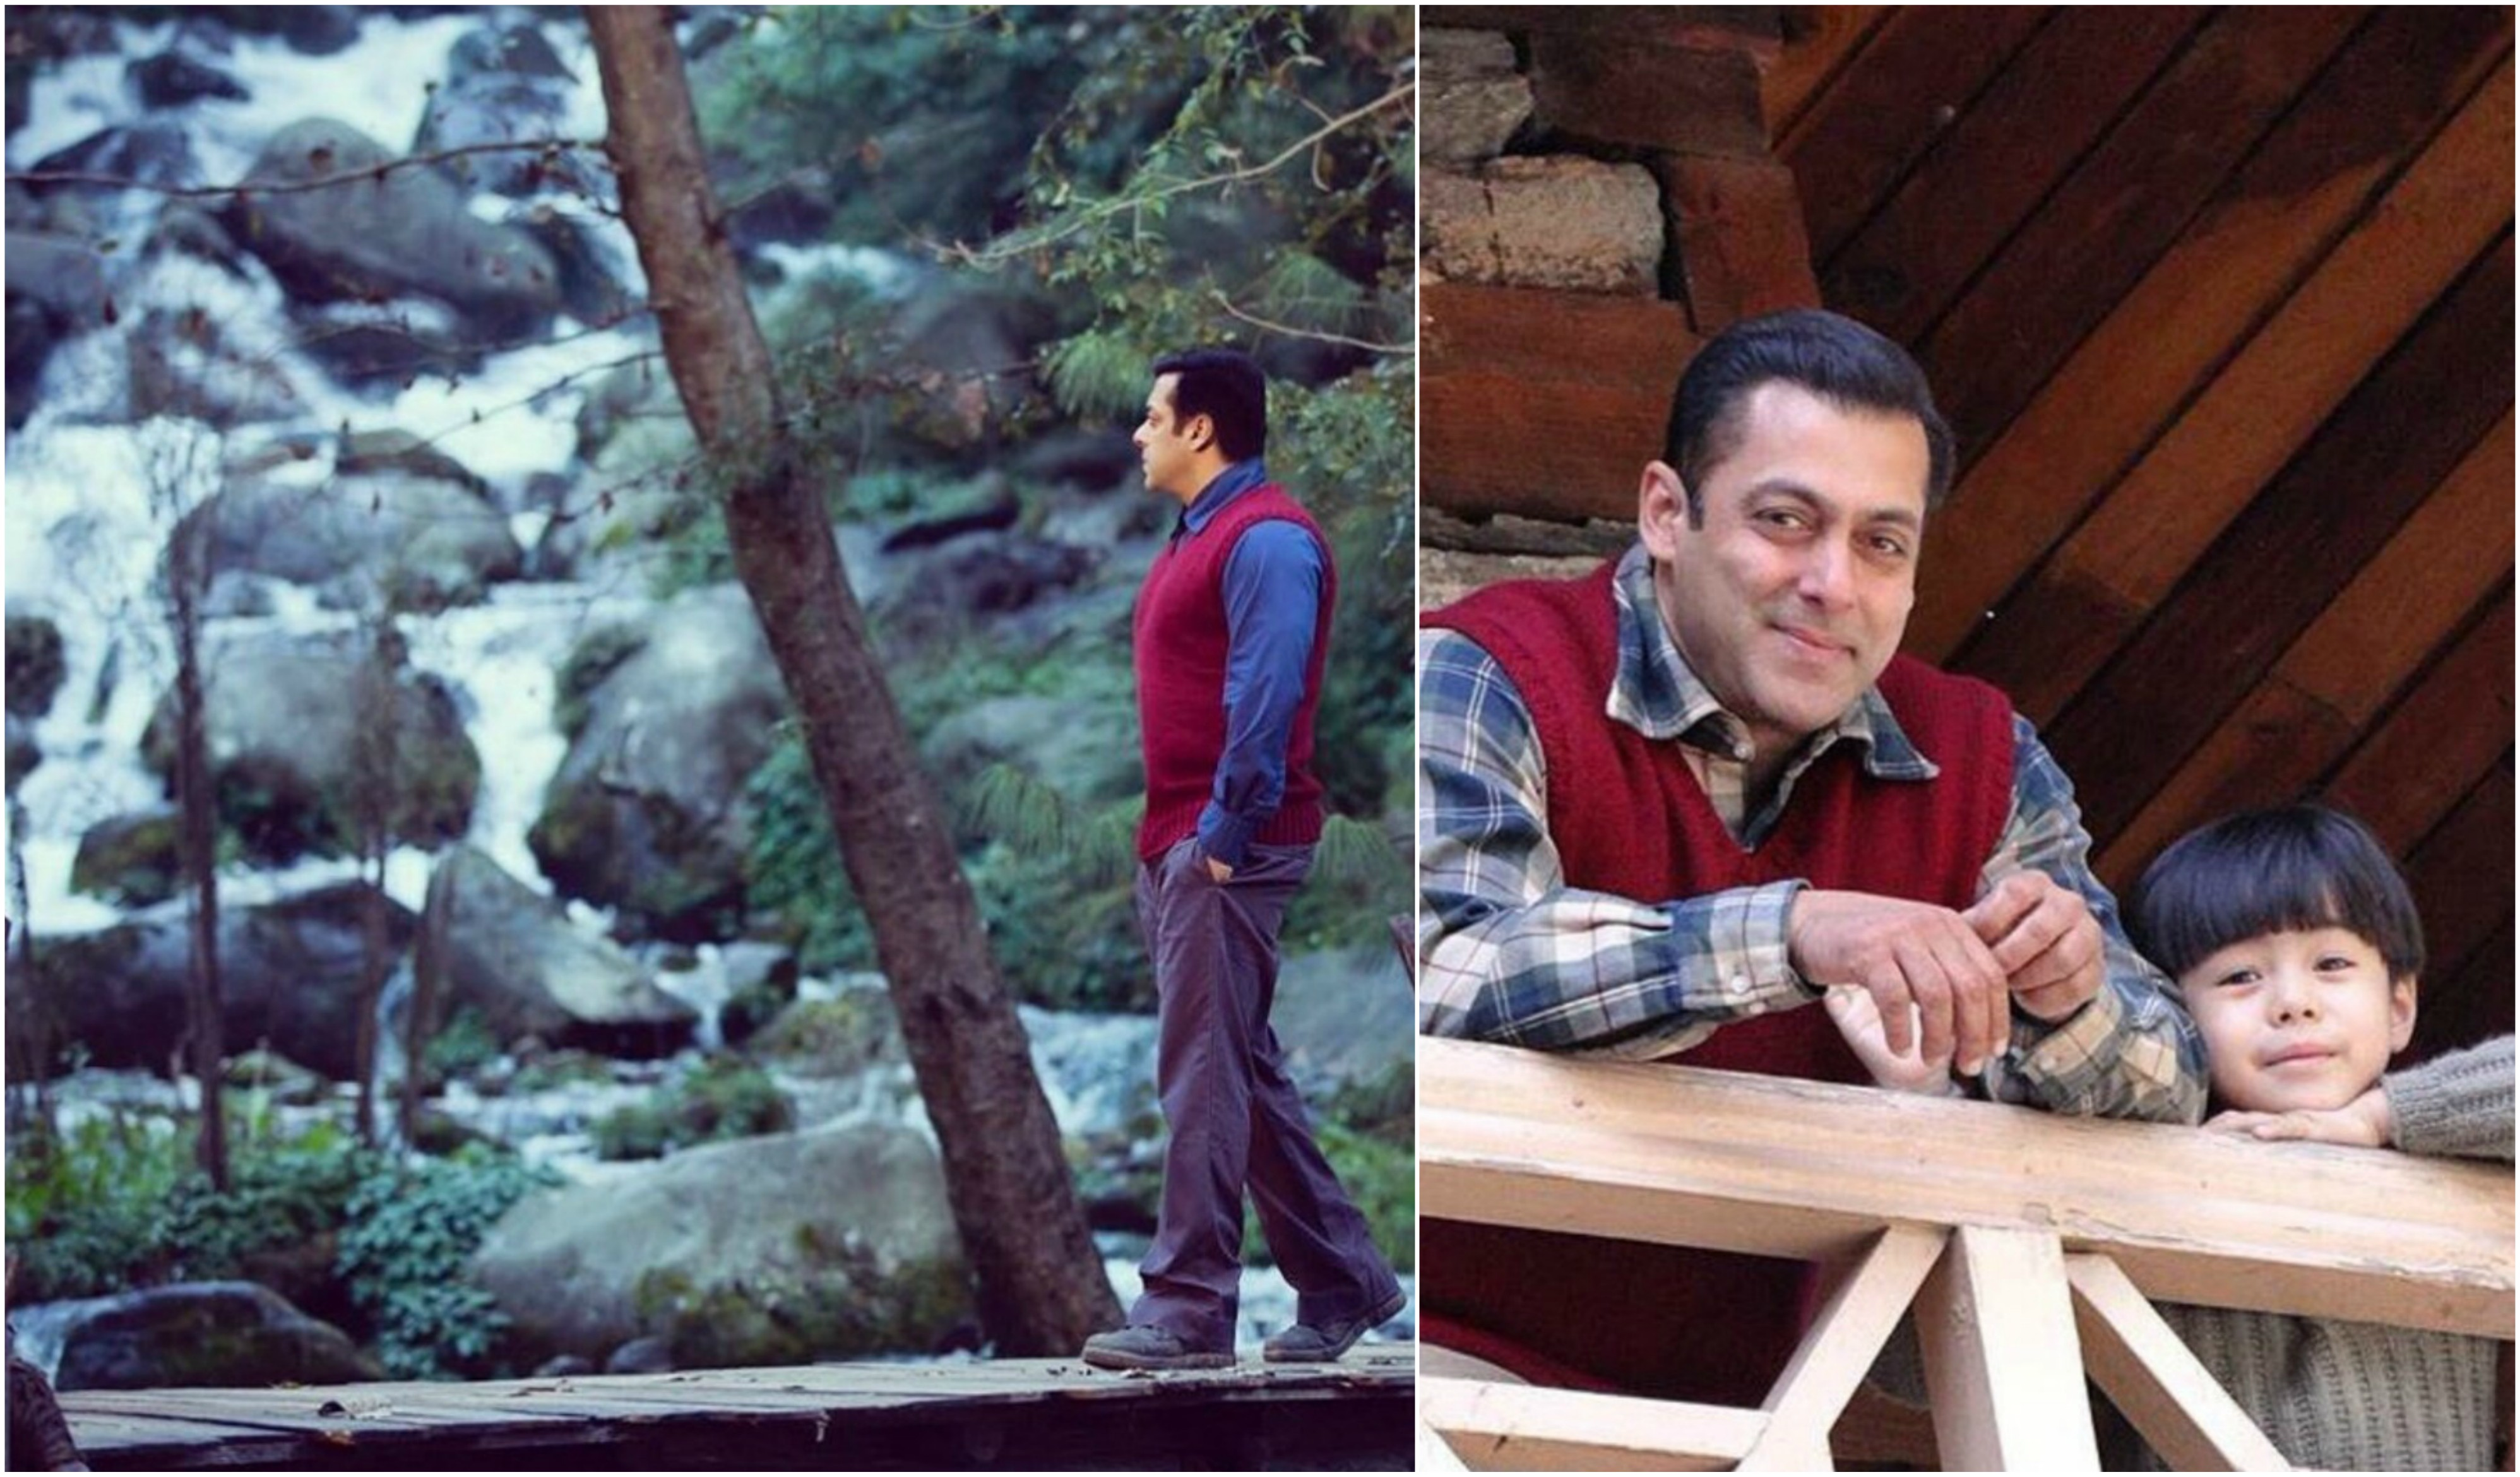 Salman Khan's candid pictures from the sets of Tubelight